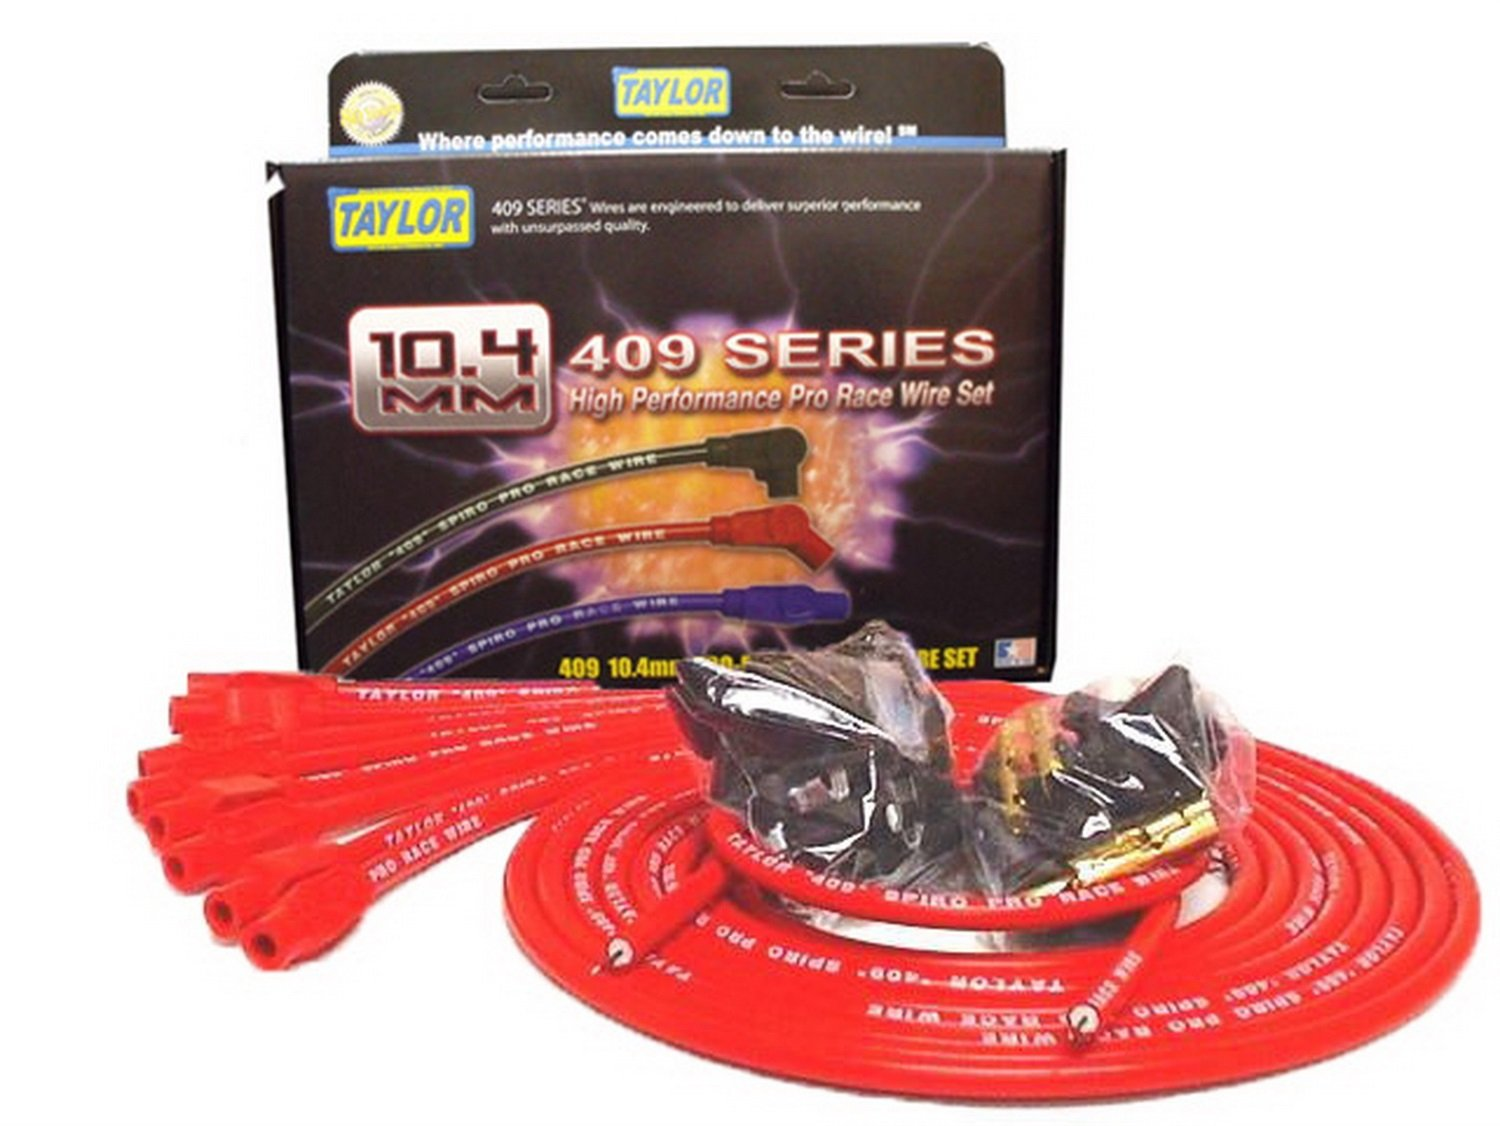 Taylor Cable 79255 Red 10.4mm Universal Fit 8-Cylinder Spiro Pro Race Spark Plug Wire Set